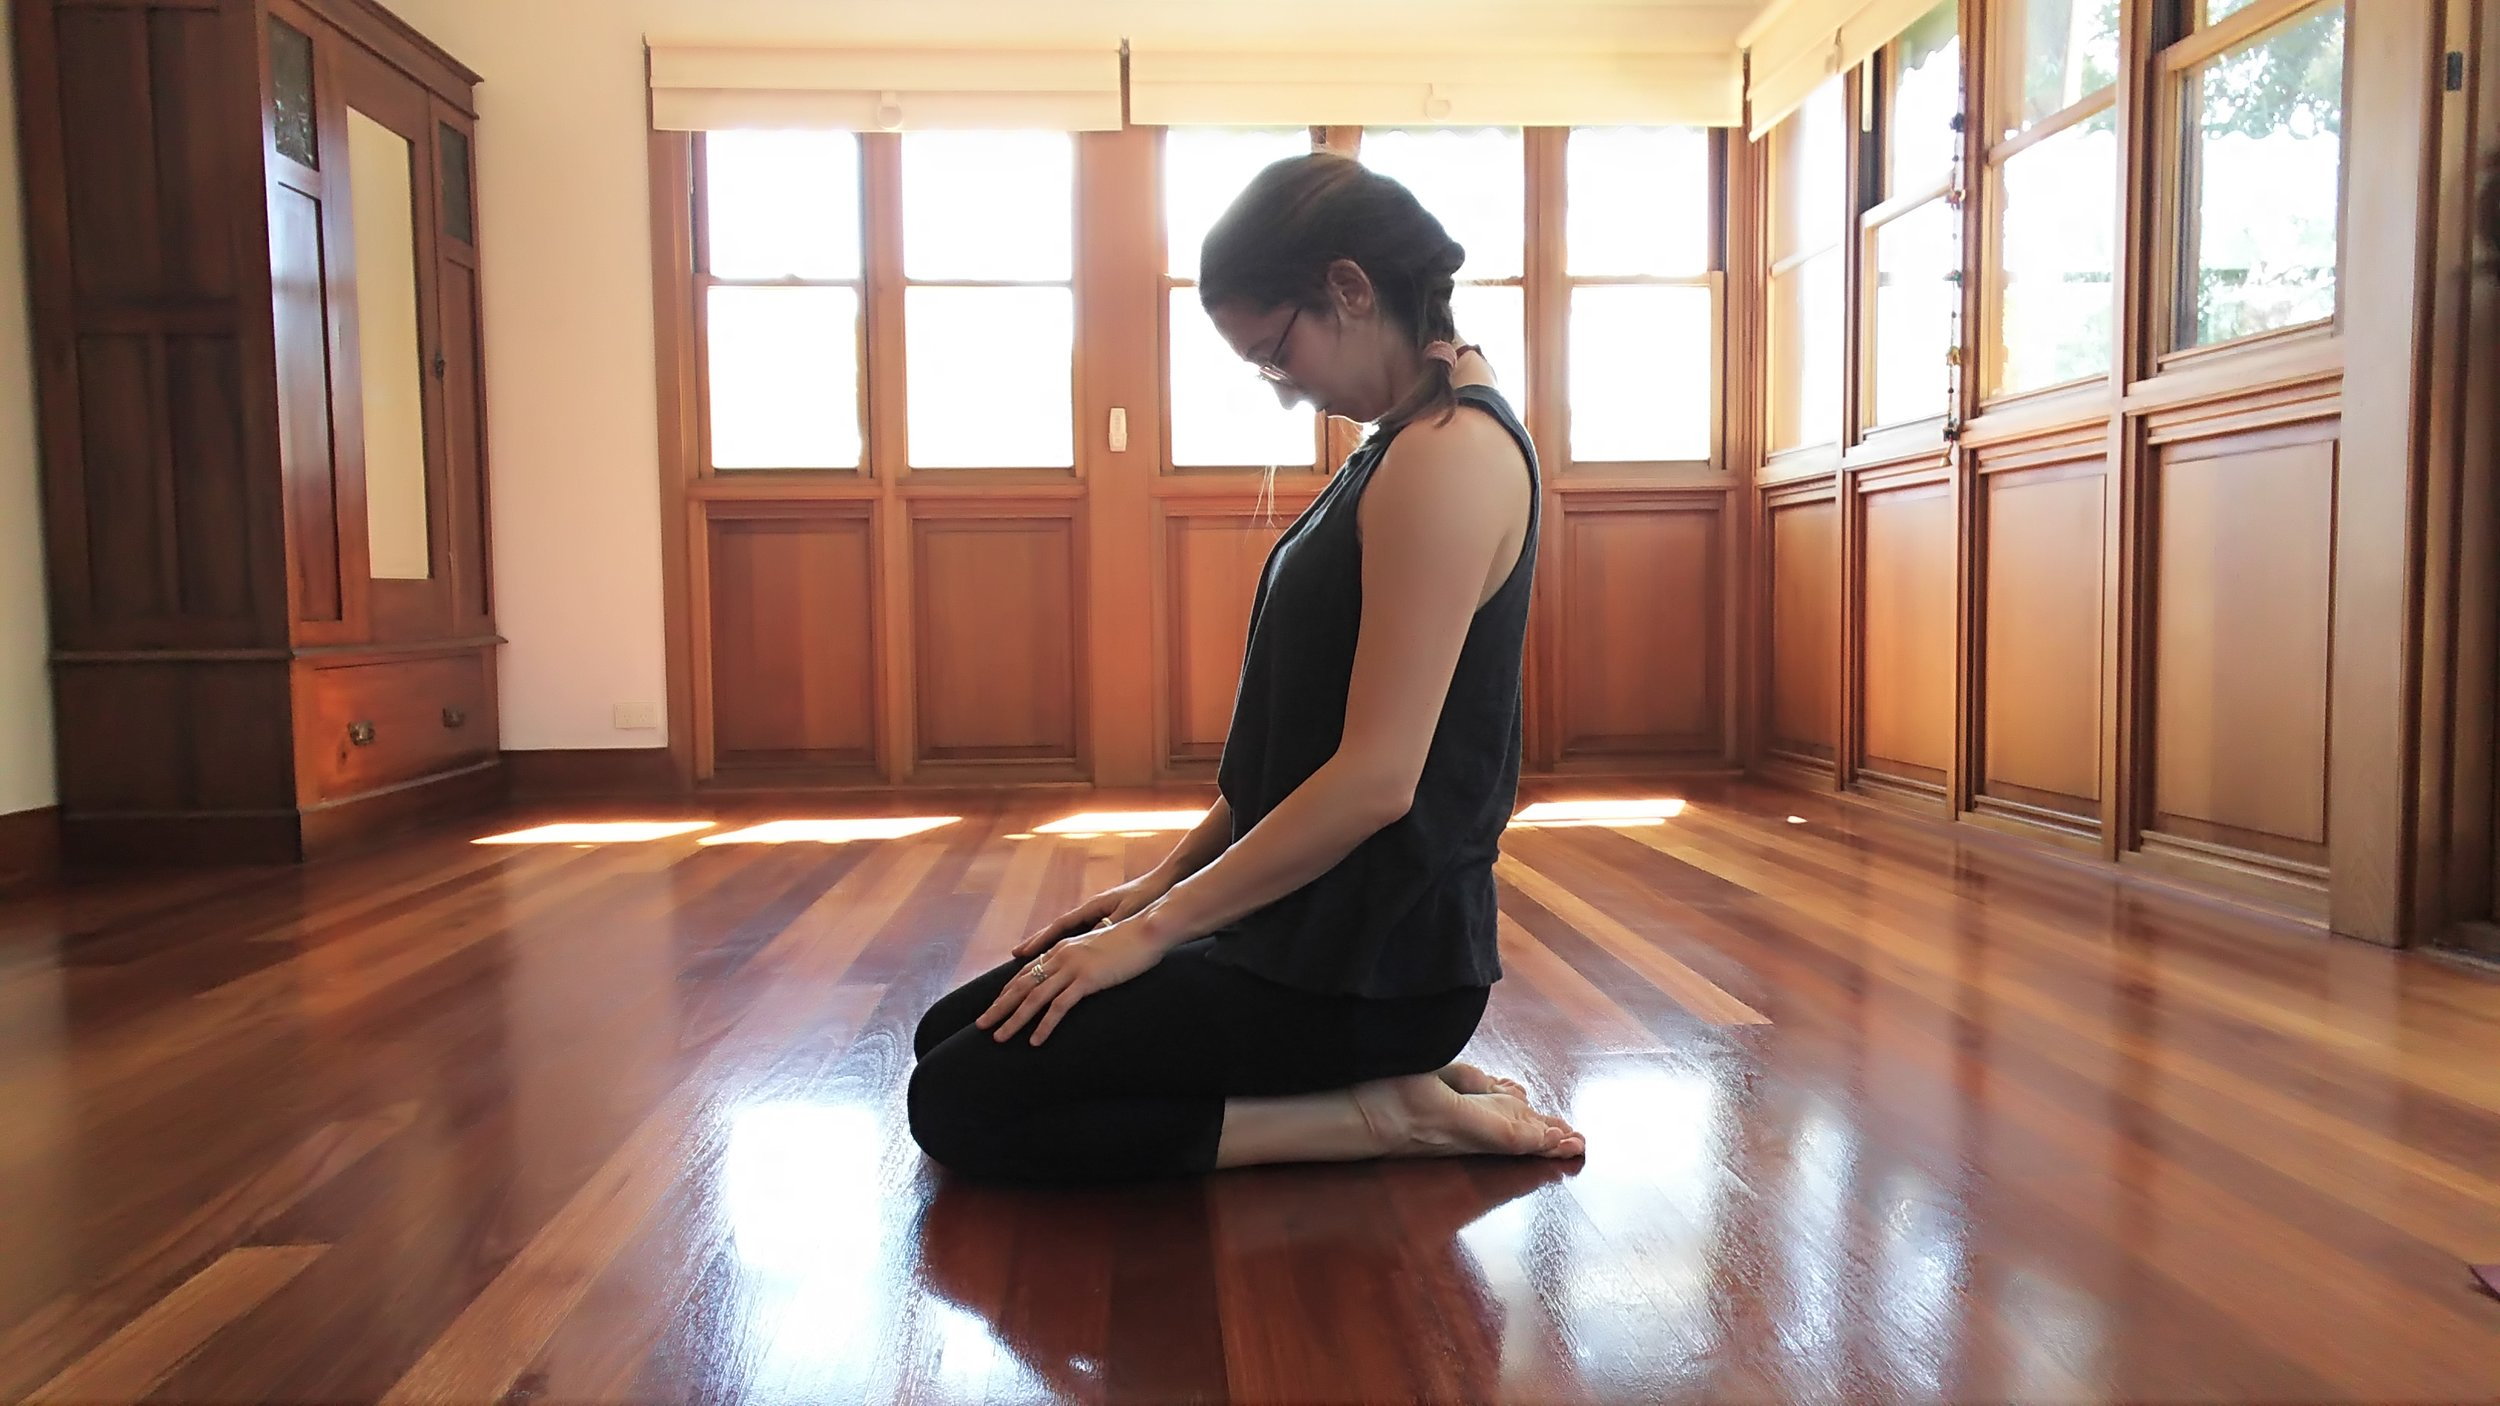 Sit on the knees or in any comfortable seated position. Slowly let the head fall forwards. Let gravity stretch the back of the neck.